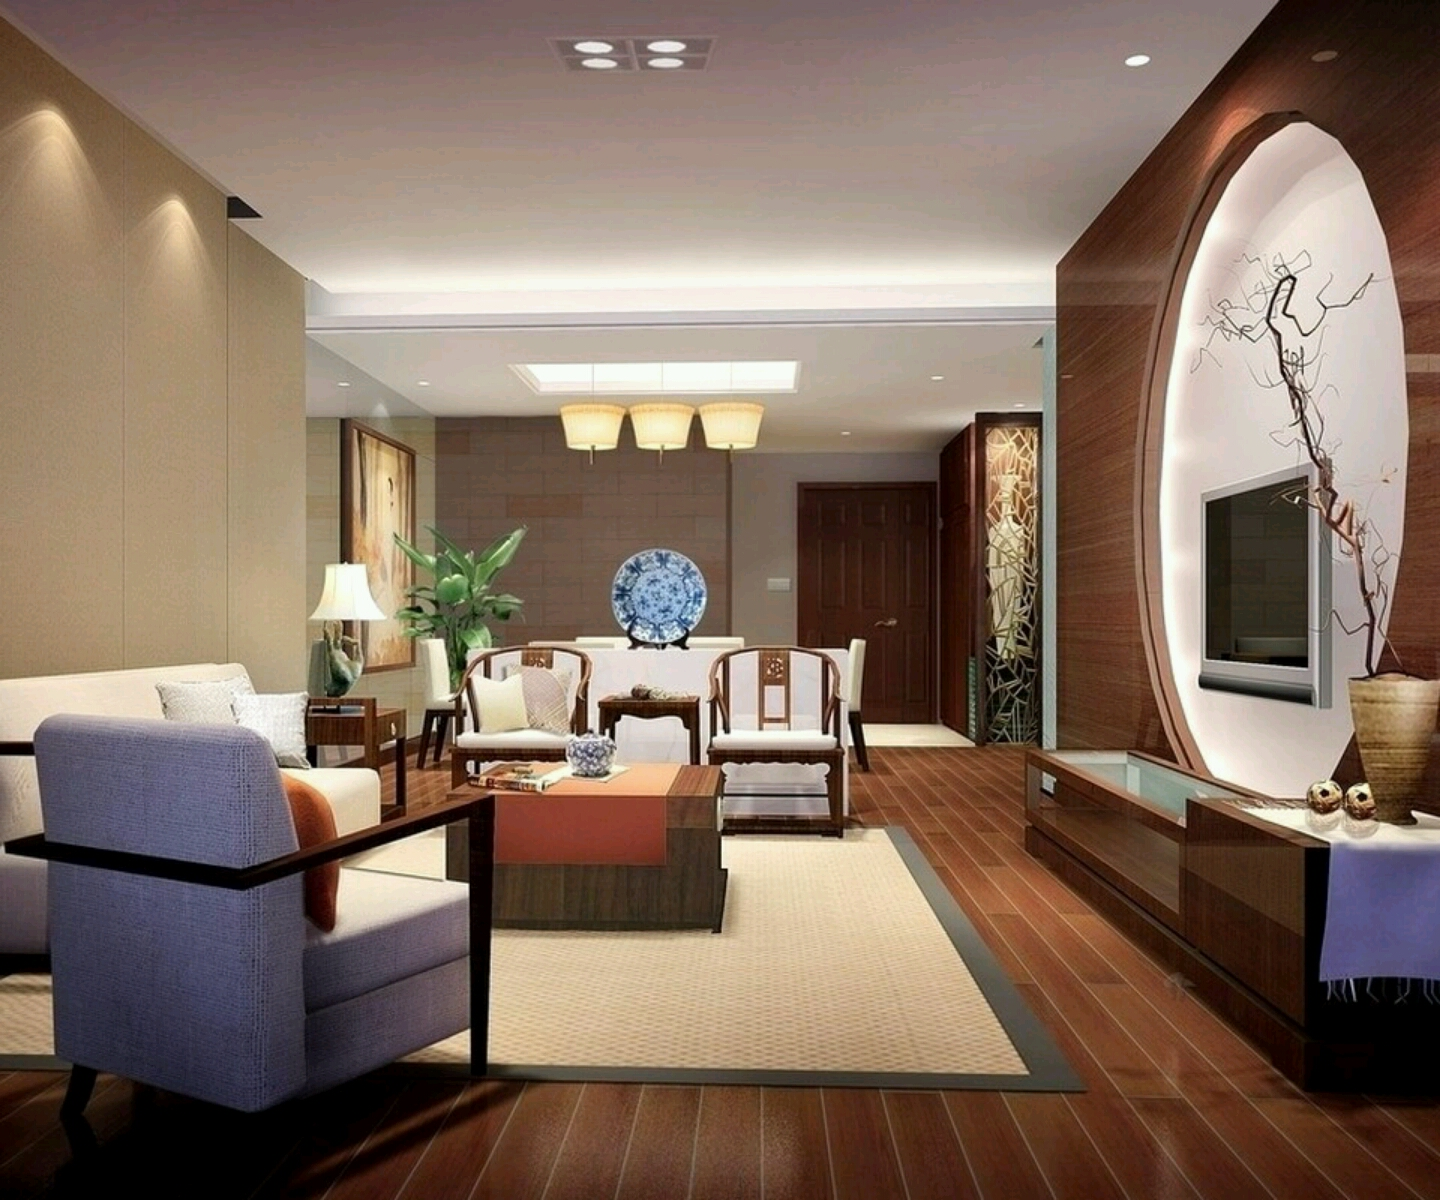 Home Design Ideas Buch: Luxury Homes Interior Decoration Living Room Designs Ideas